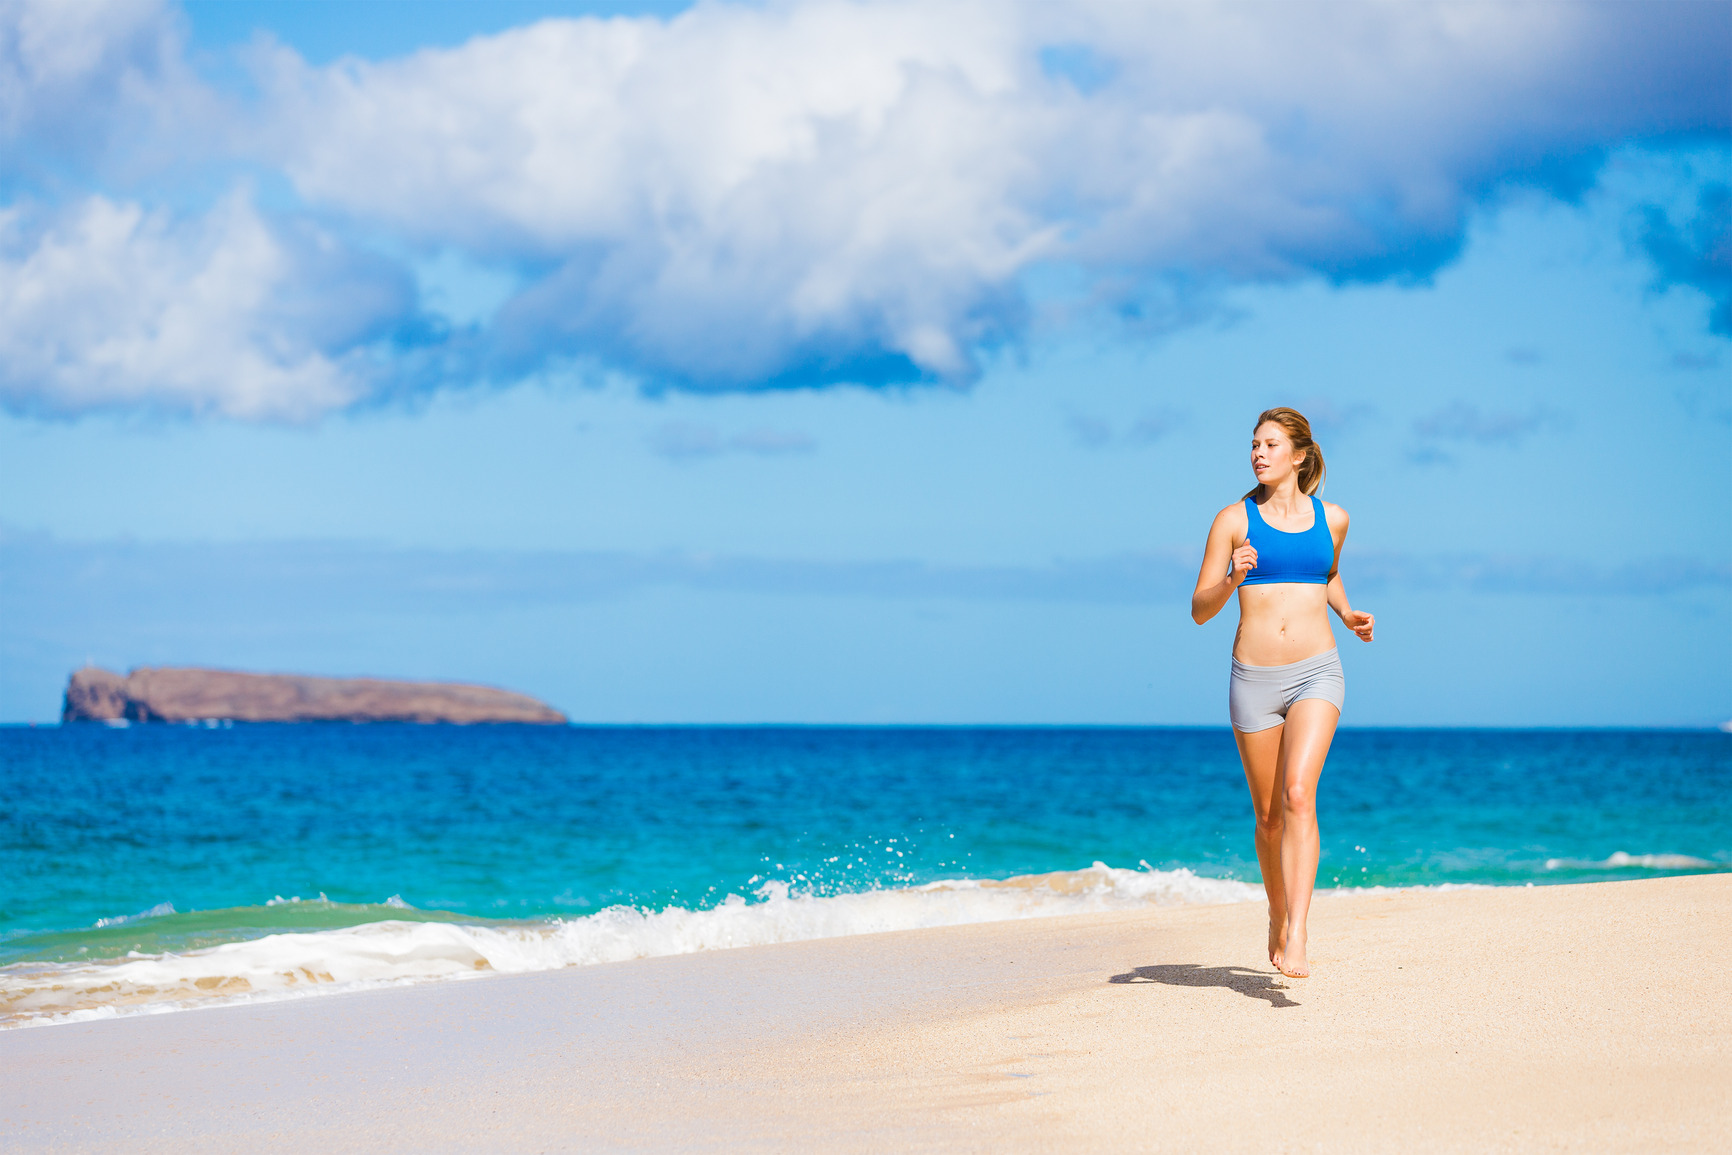 Beautiful Athletic Woman Running on the Beach